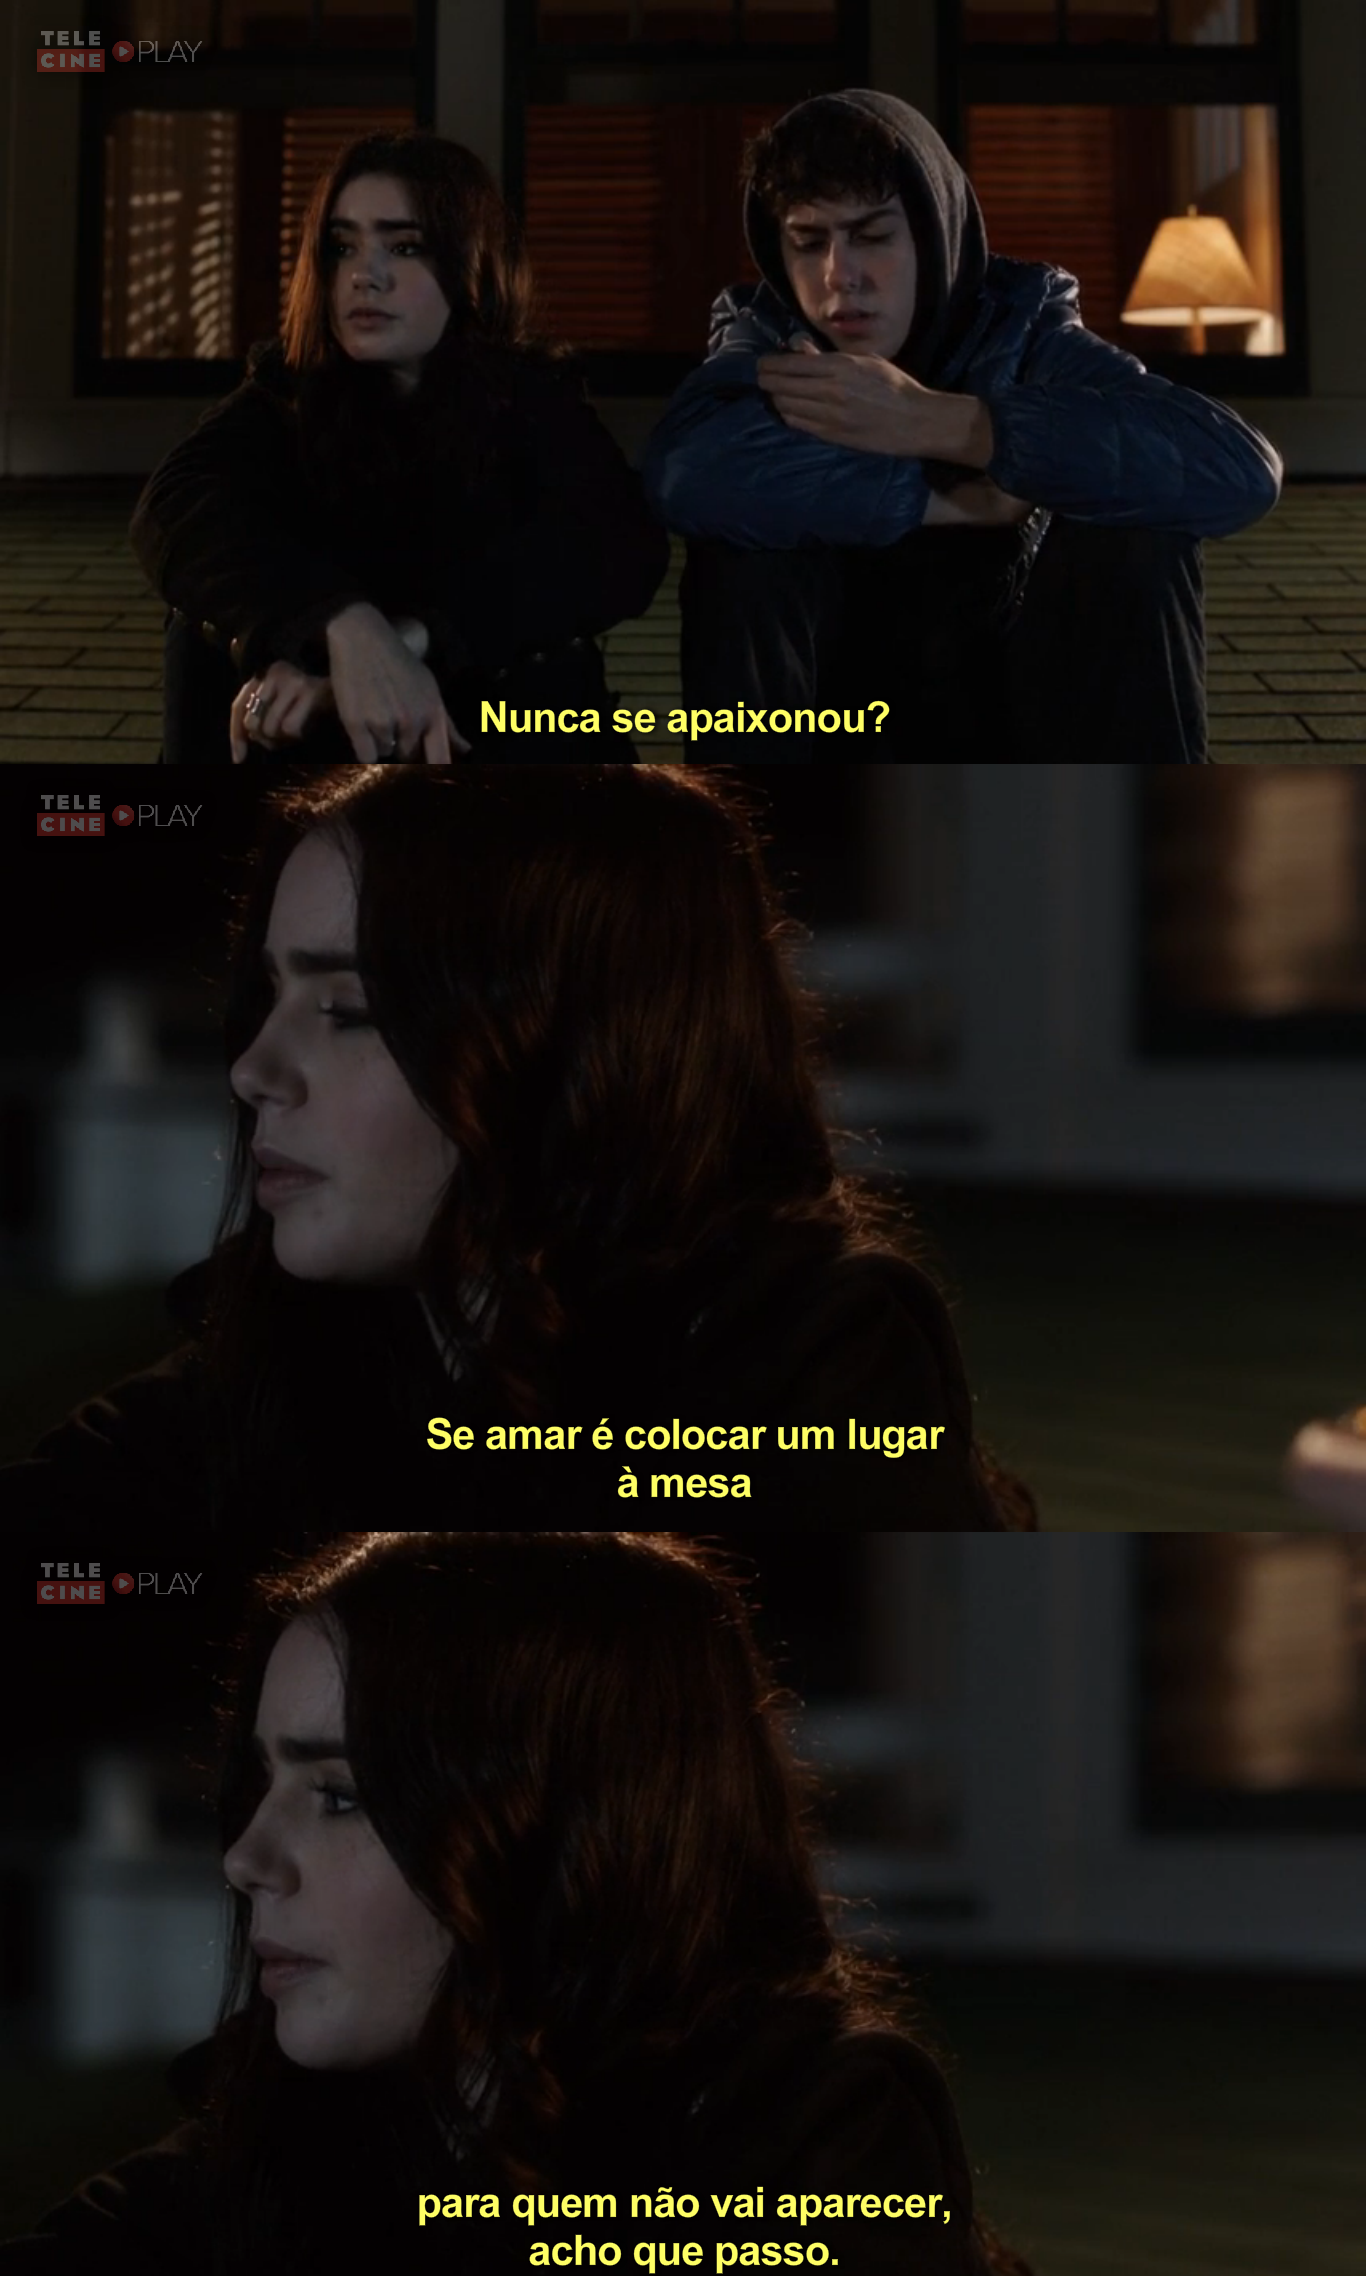 Ligados Pelo Amor Stuck In Love Frases Frases Movies E